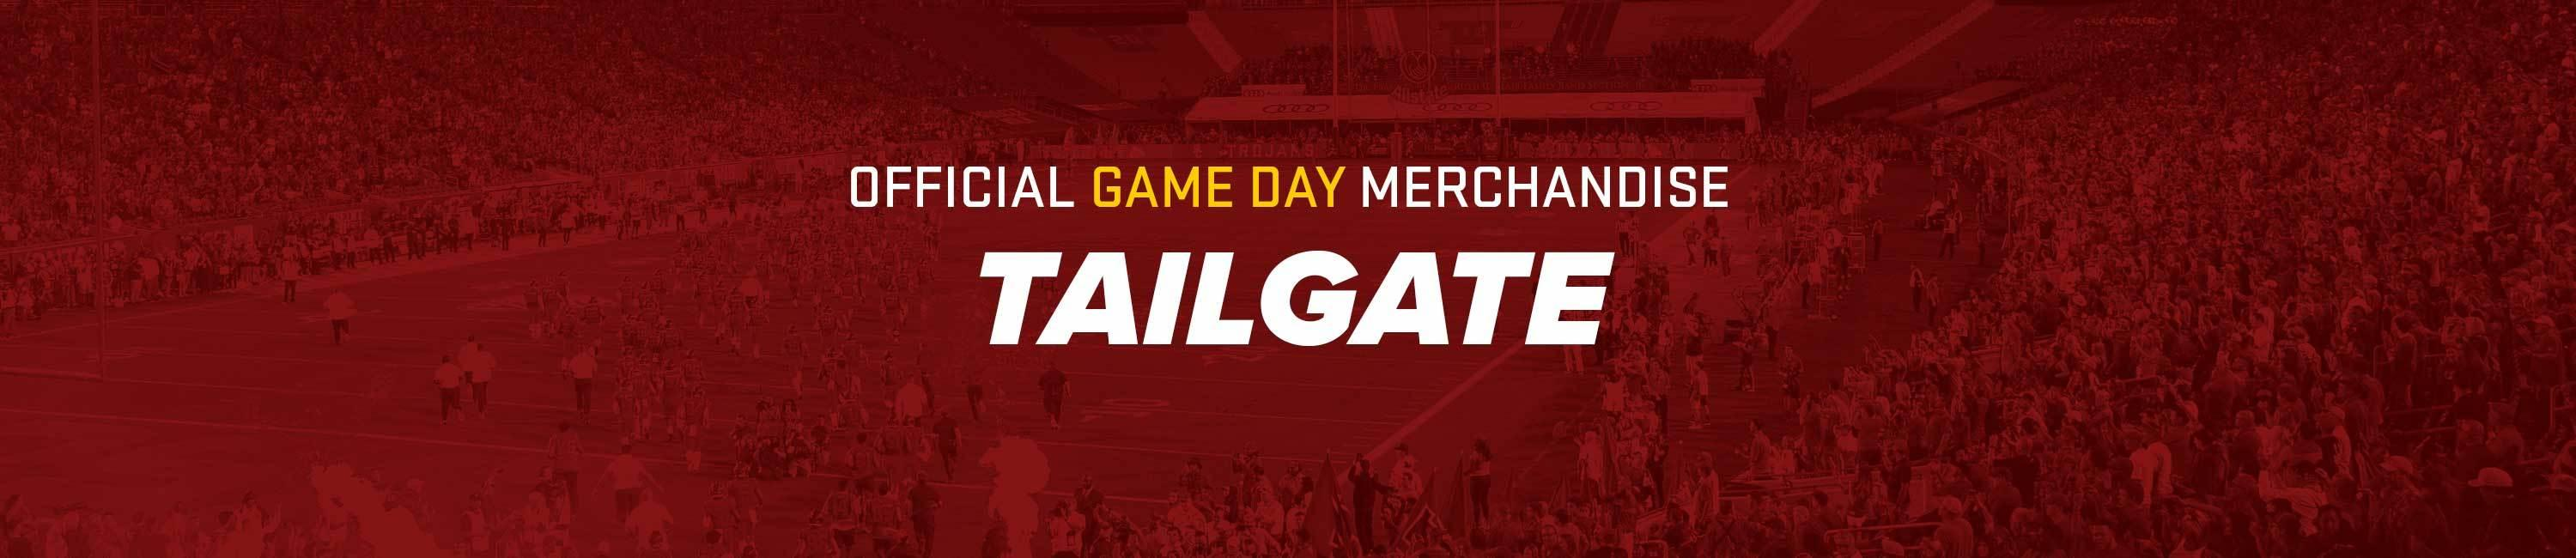 USC Official Game Day Tailgate